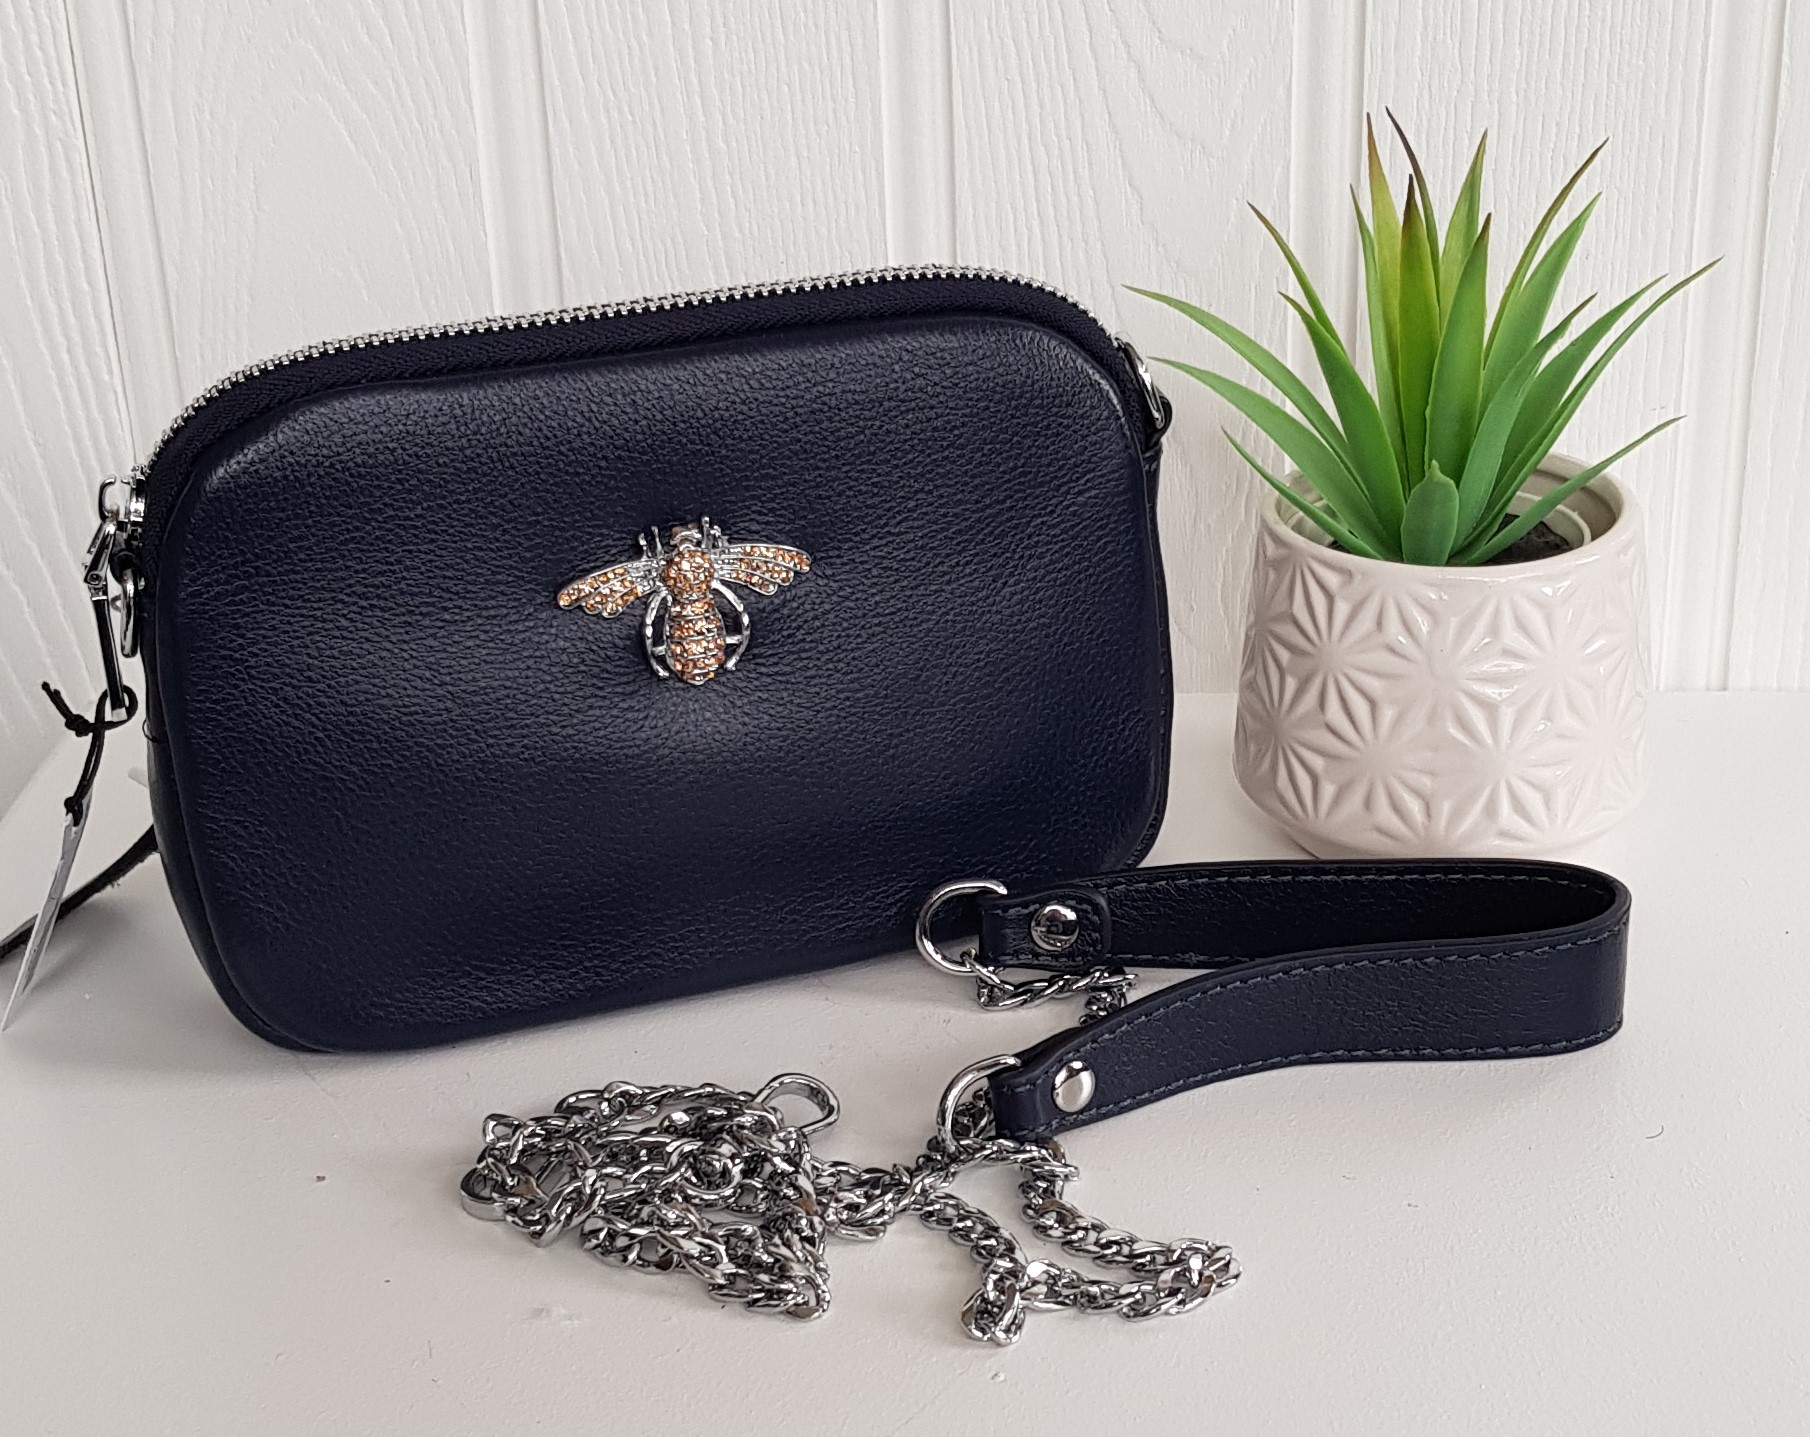 Bag - Black Leather Small Bag With Crystal Bee